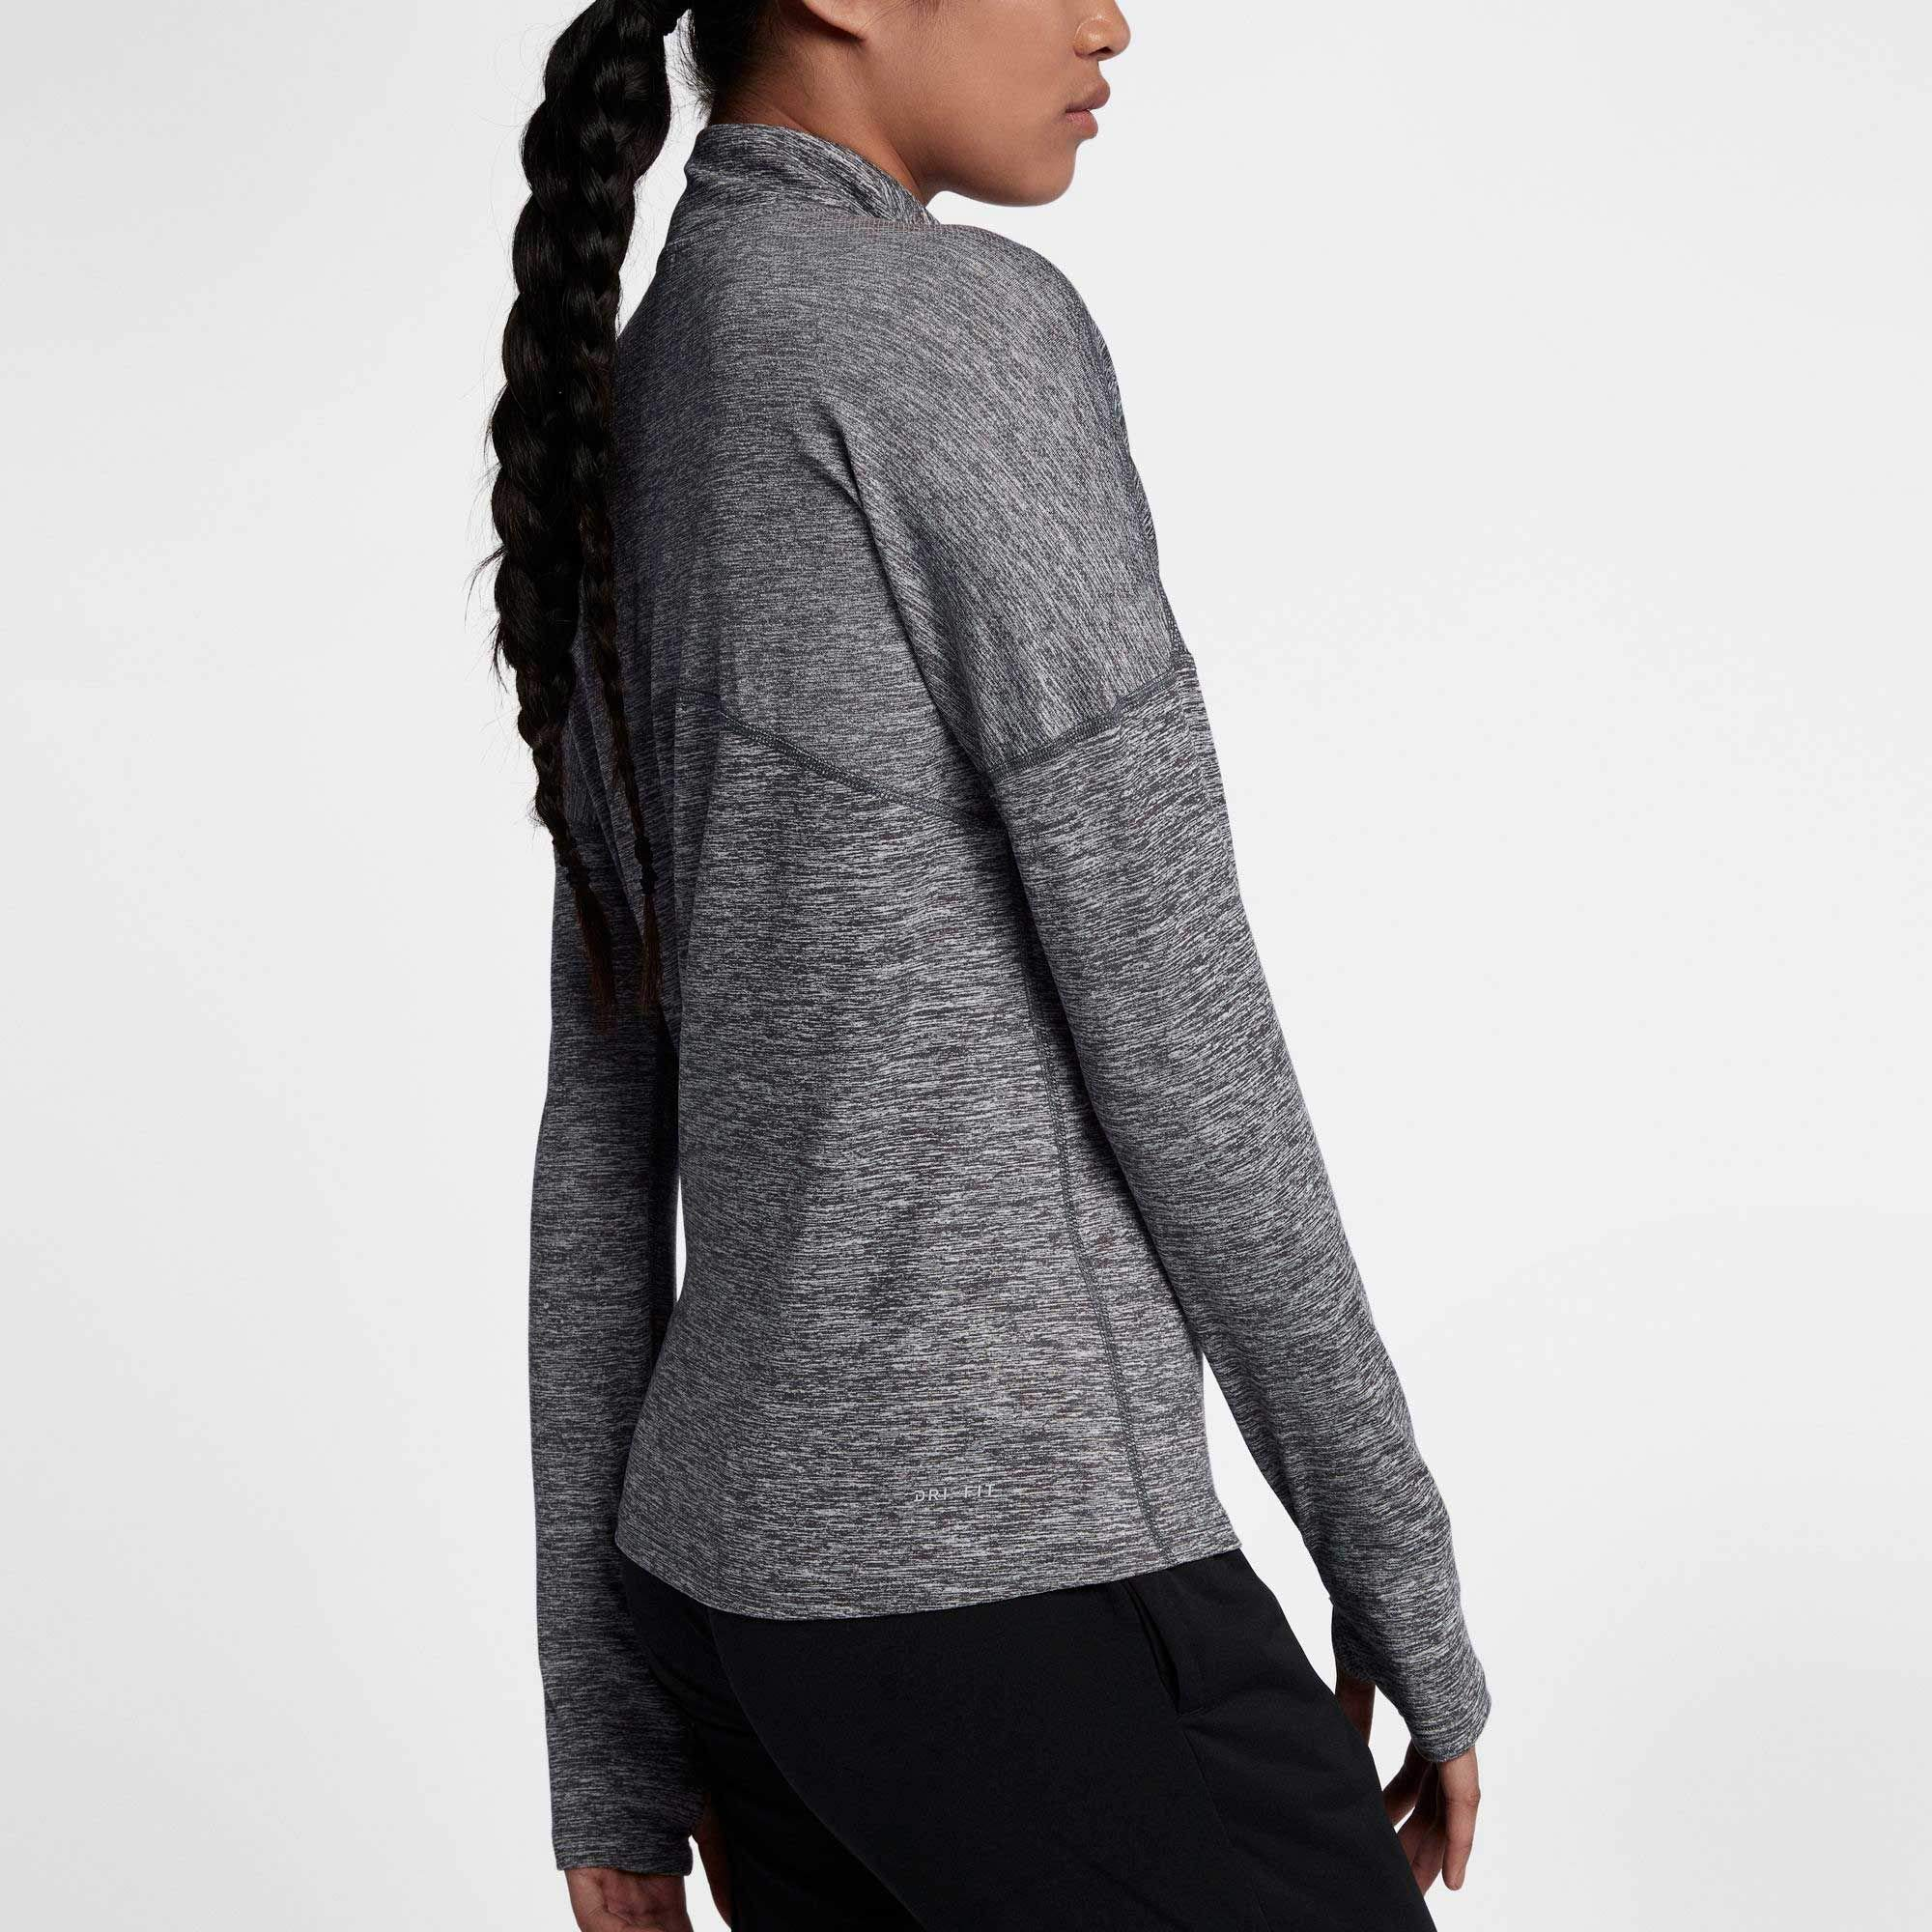 Nike Women's Dry Element Half Zip Top (X-Small, Dark Grey/HTR) by Nike (Image #2)